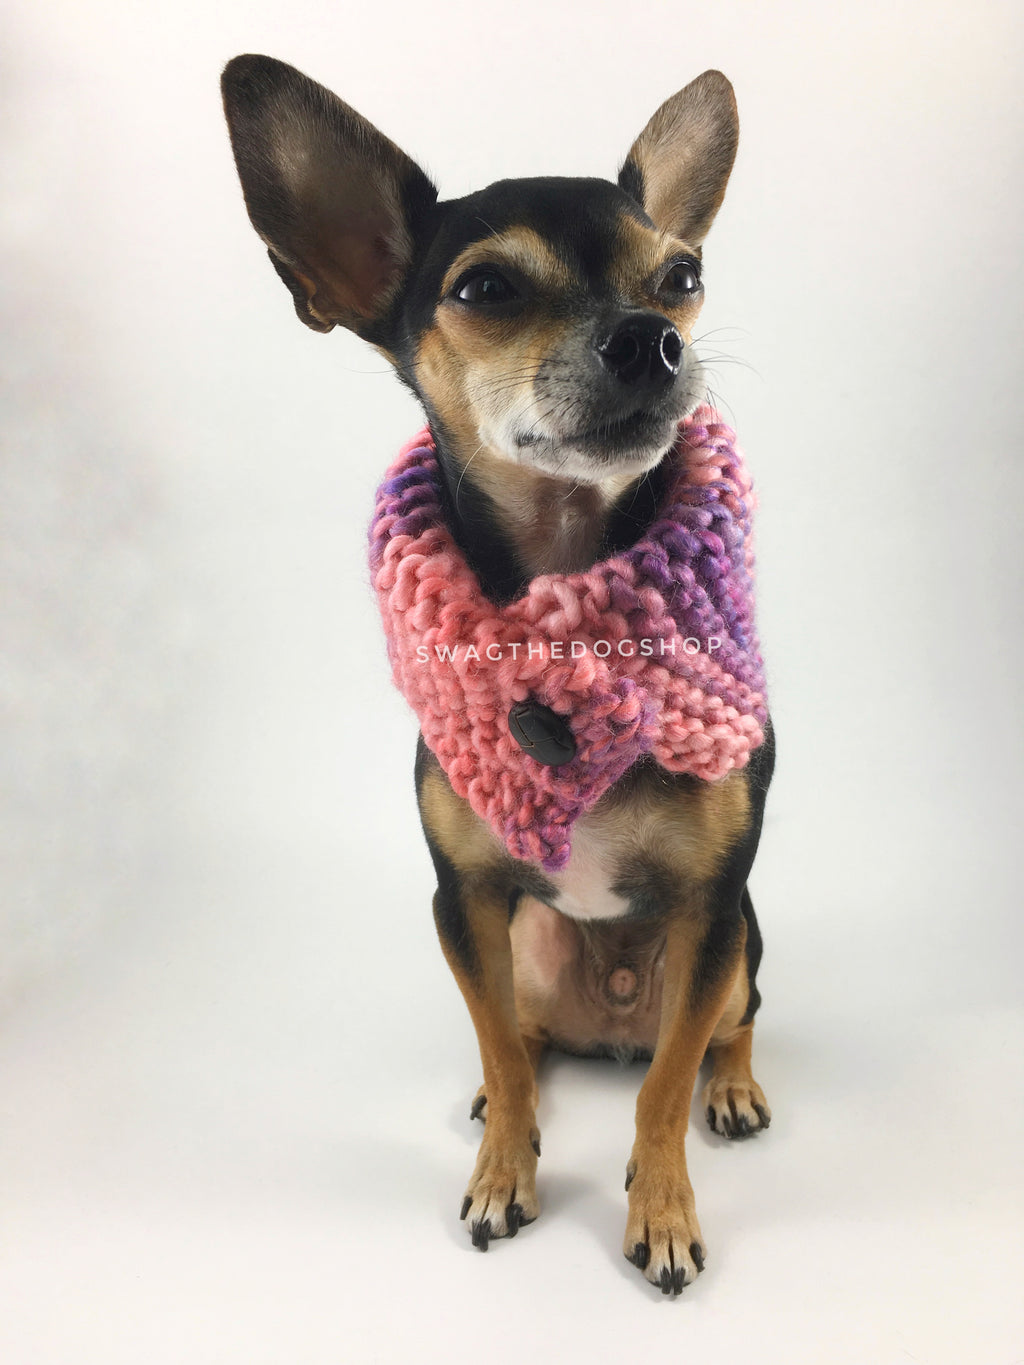 Cotton Candy Swagsnood -  Full Front View of Cute Chihuahua Dog Wearing Mixed Color of Pink, Purple and Salmon Pink Dog Snood with Accent Button